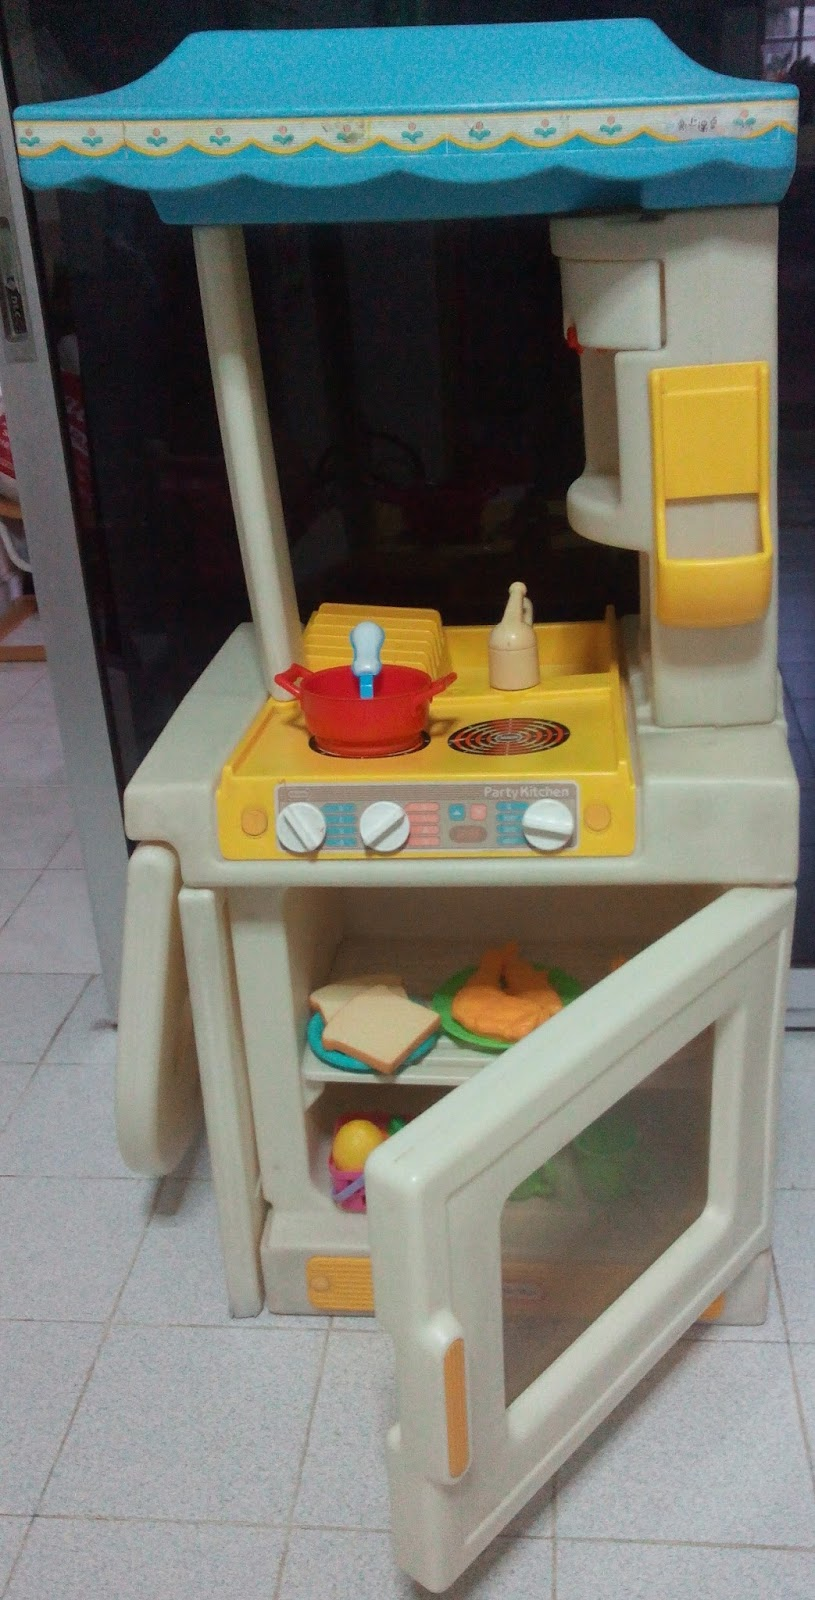 Toy Kitchen Utensils And Food Included As Per Pics Not For Fussy Ers Noticeable Wear Tear Signs Missing Play Phone